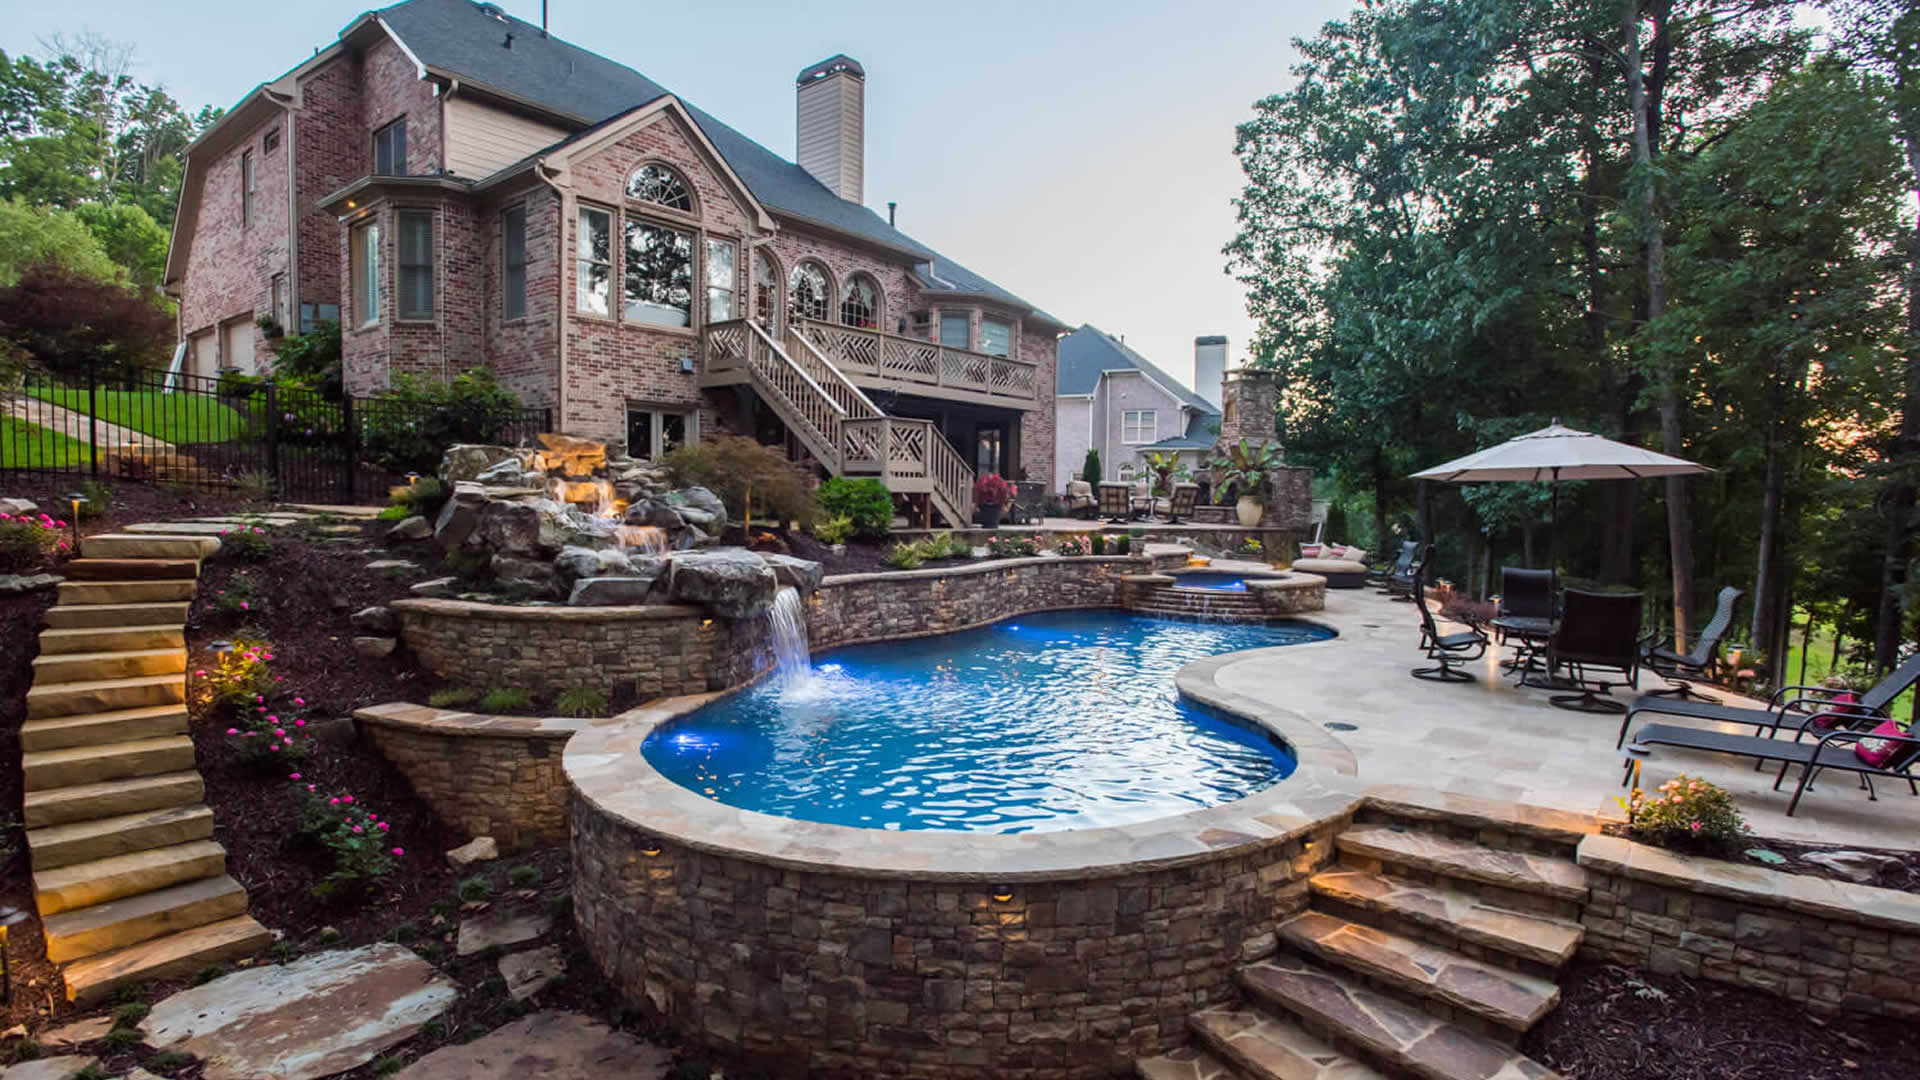 Make your pool with the best pool builders post thumbnail image